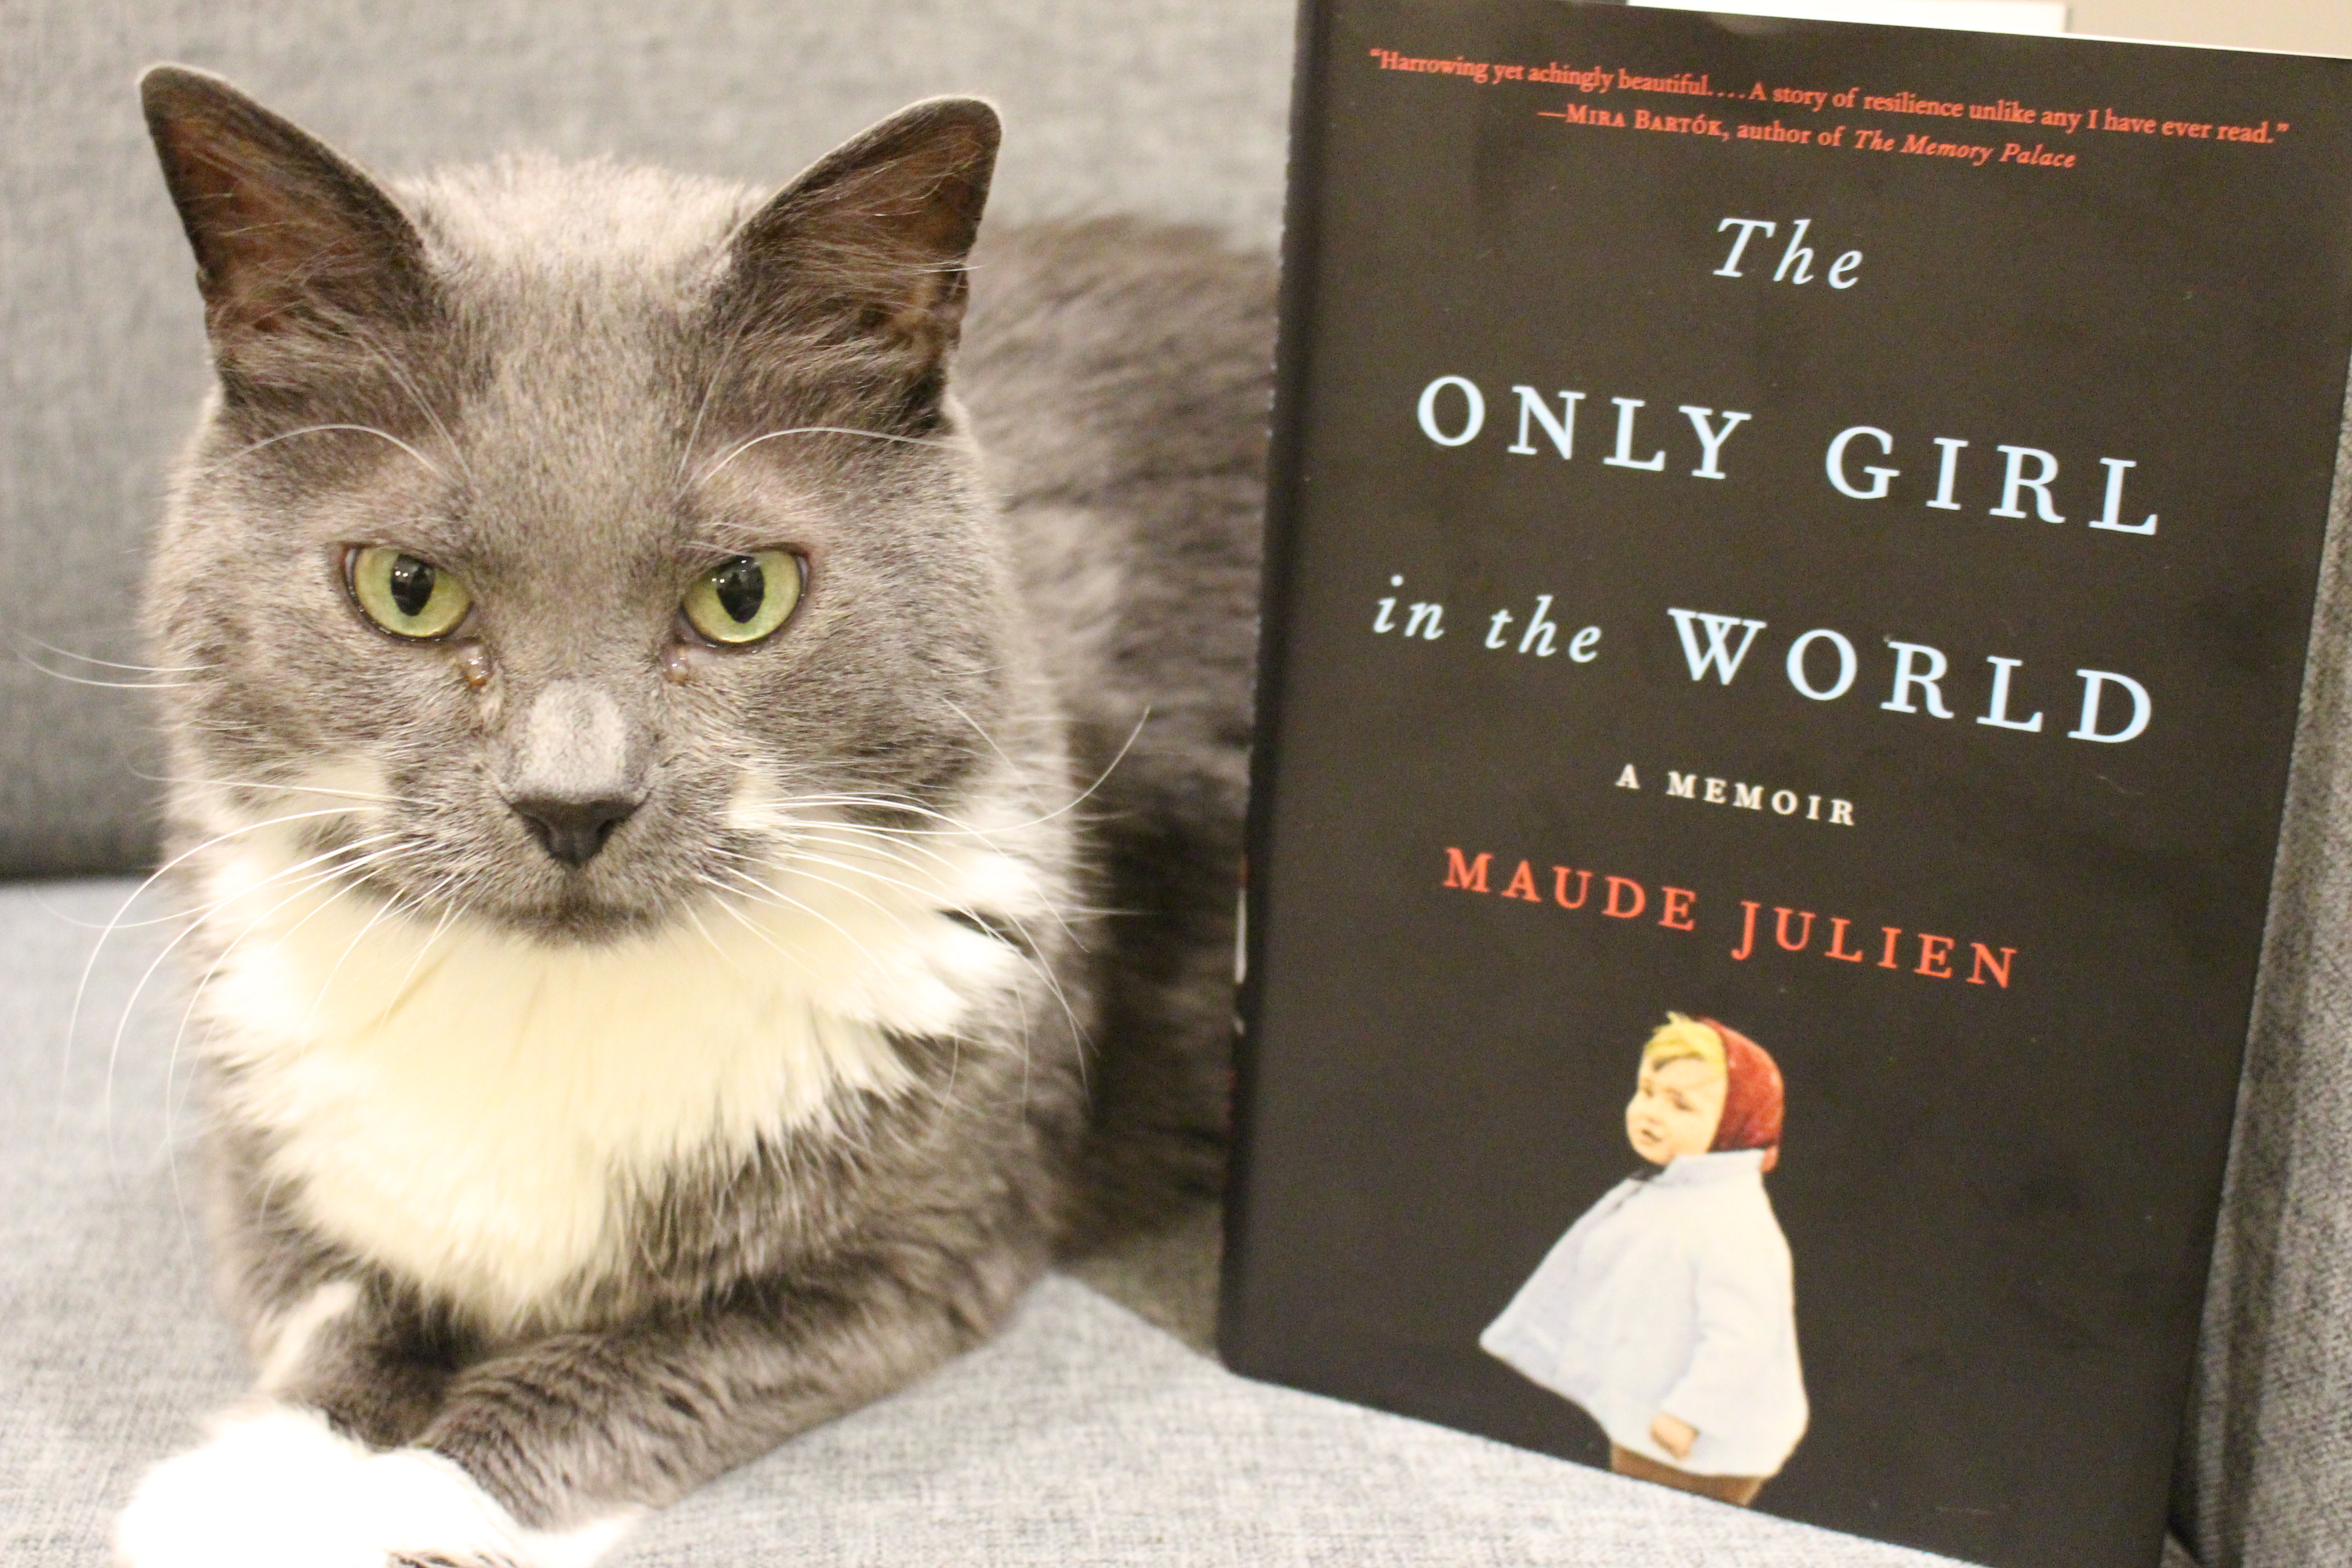 Book Review: The Only Girl in the World by Maude Julien